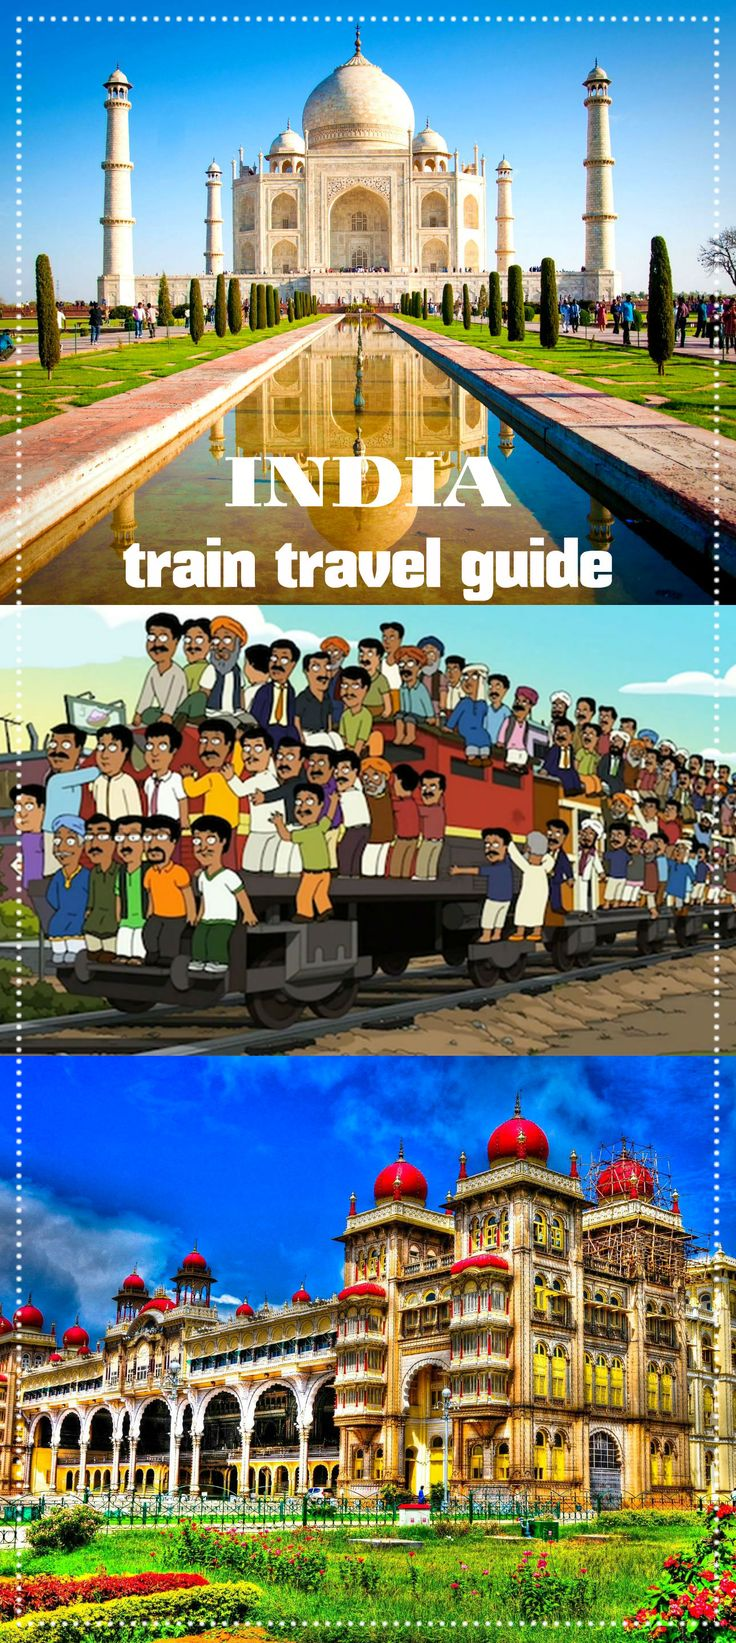 Complete guide to travel India by train. All you need to know; how to buy tickets, different classes, budget, need to know, long distance trains, tips.